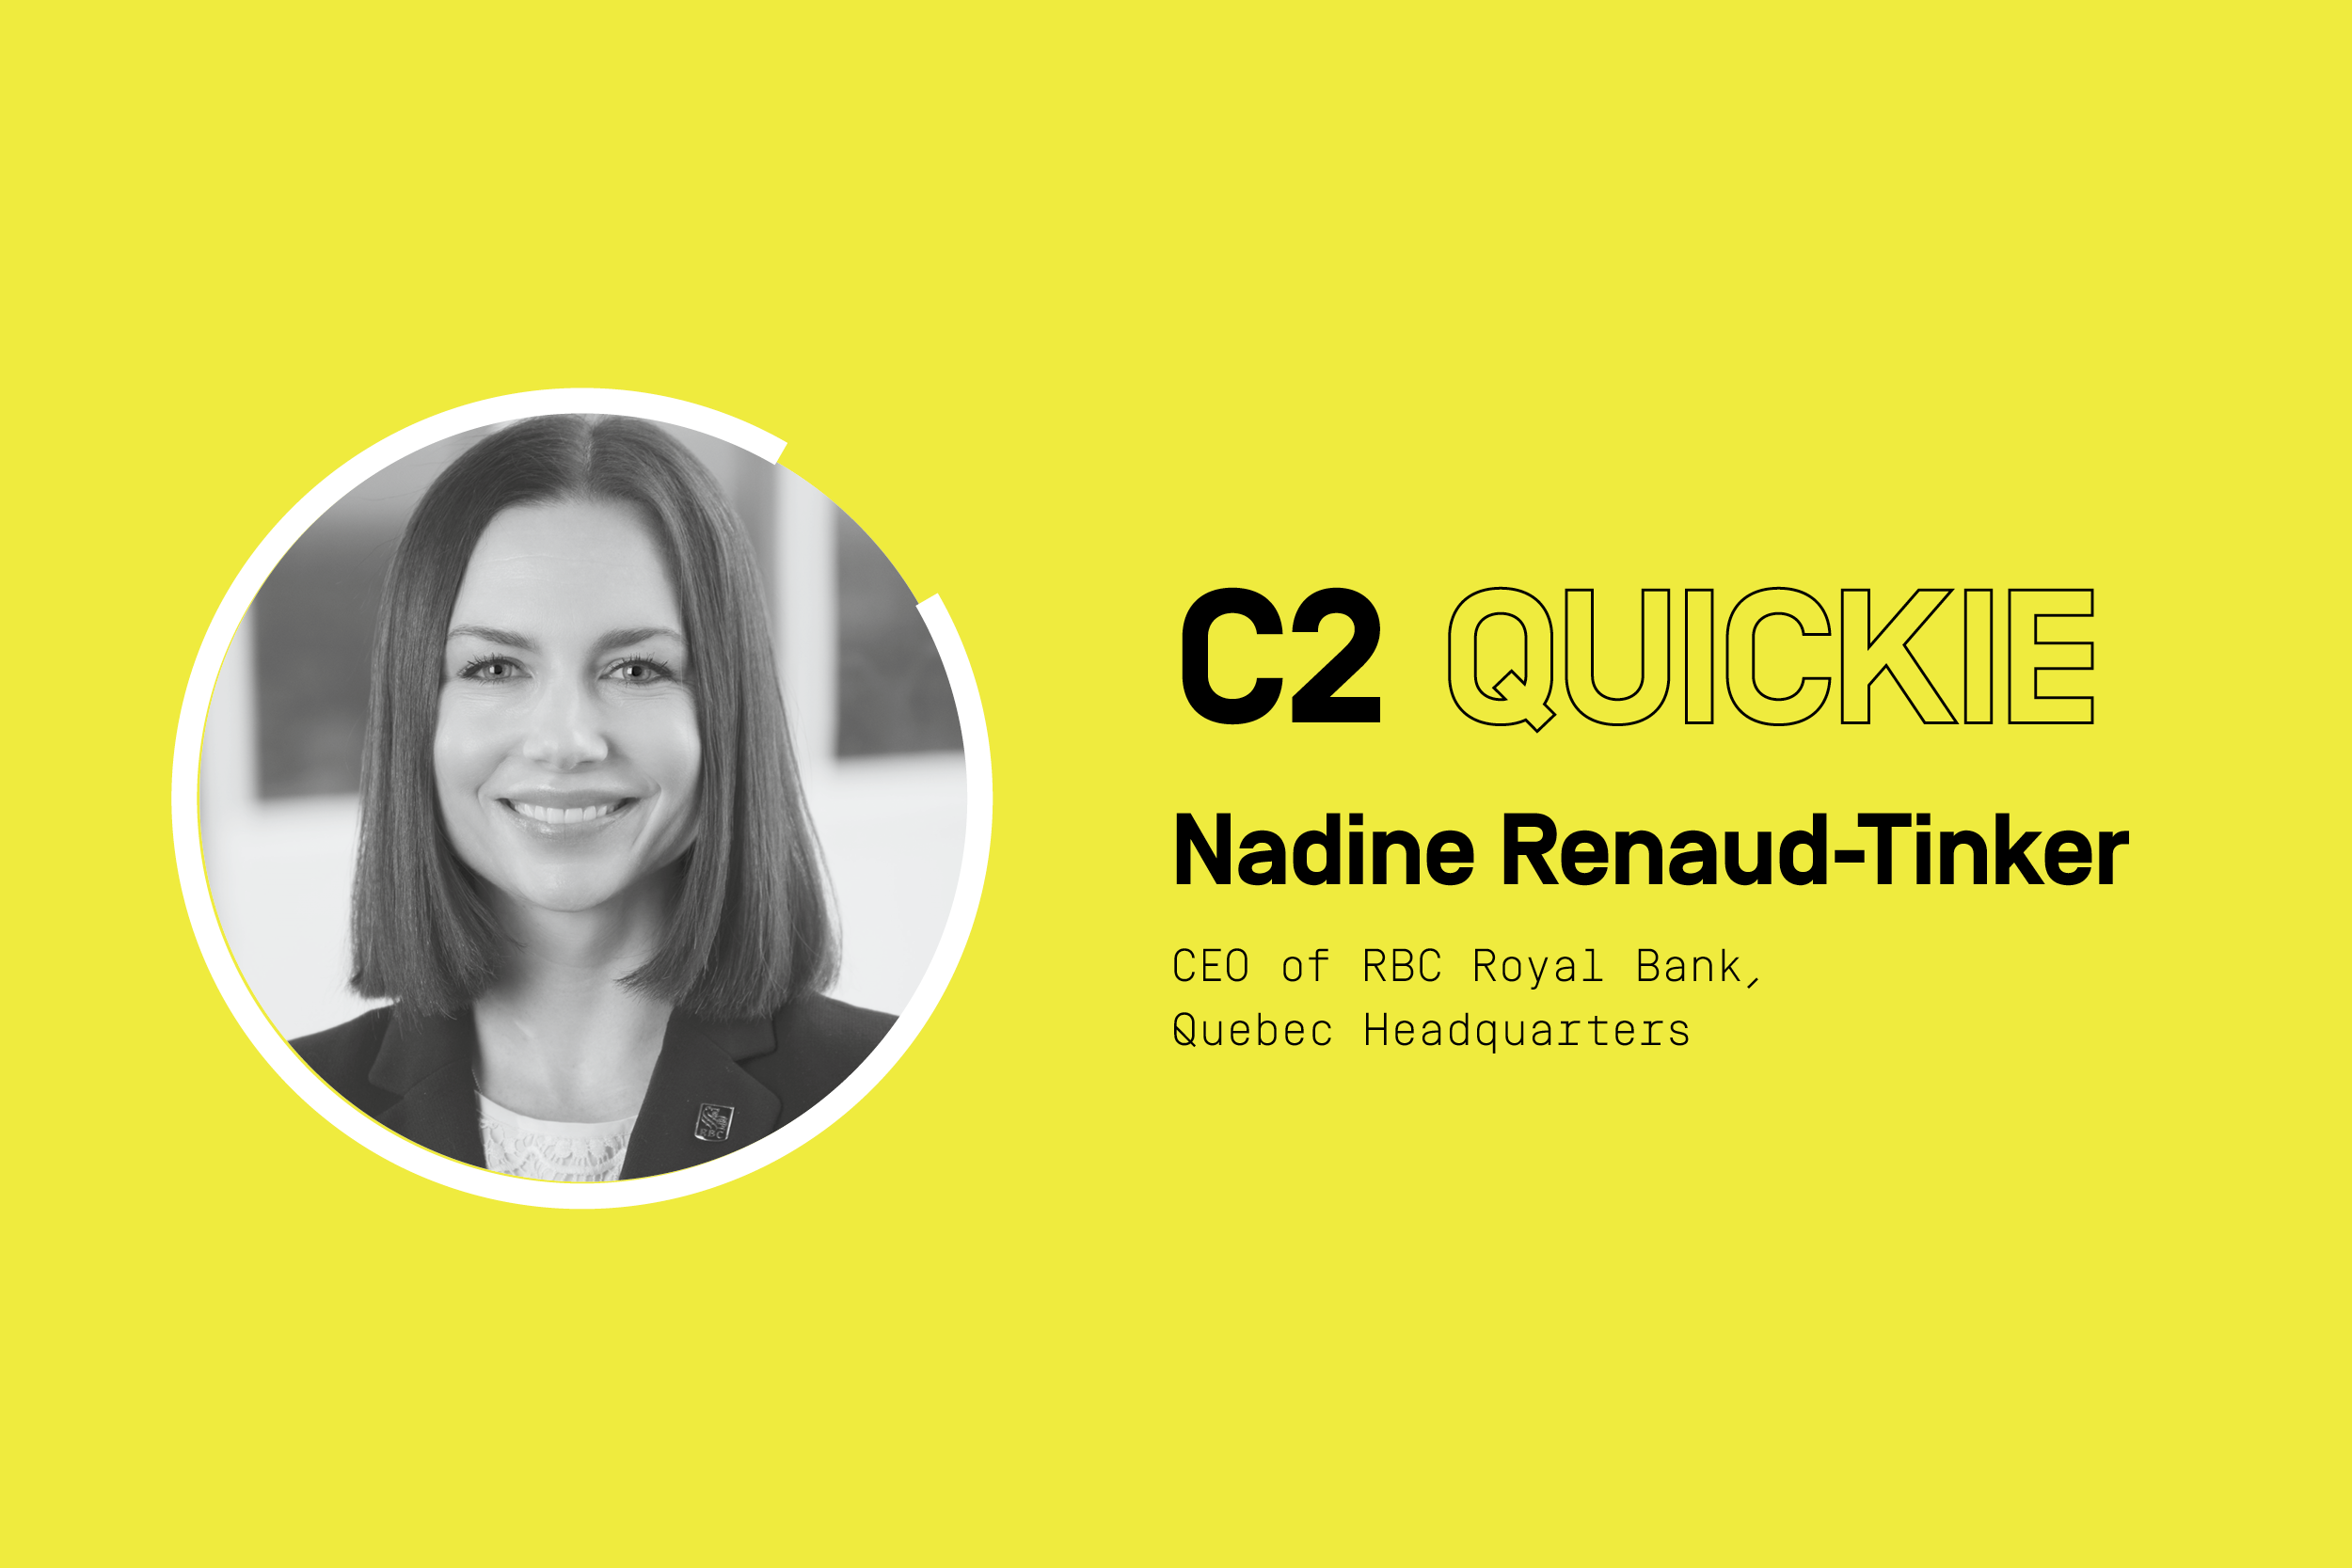 C2 Quickie: Nadine Renaud-Tinker of RBC is excited about what the future holds